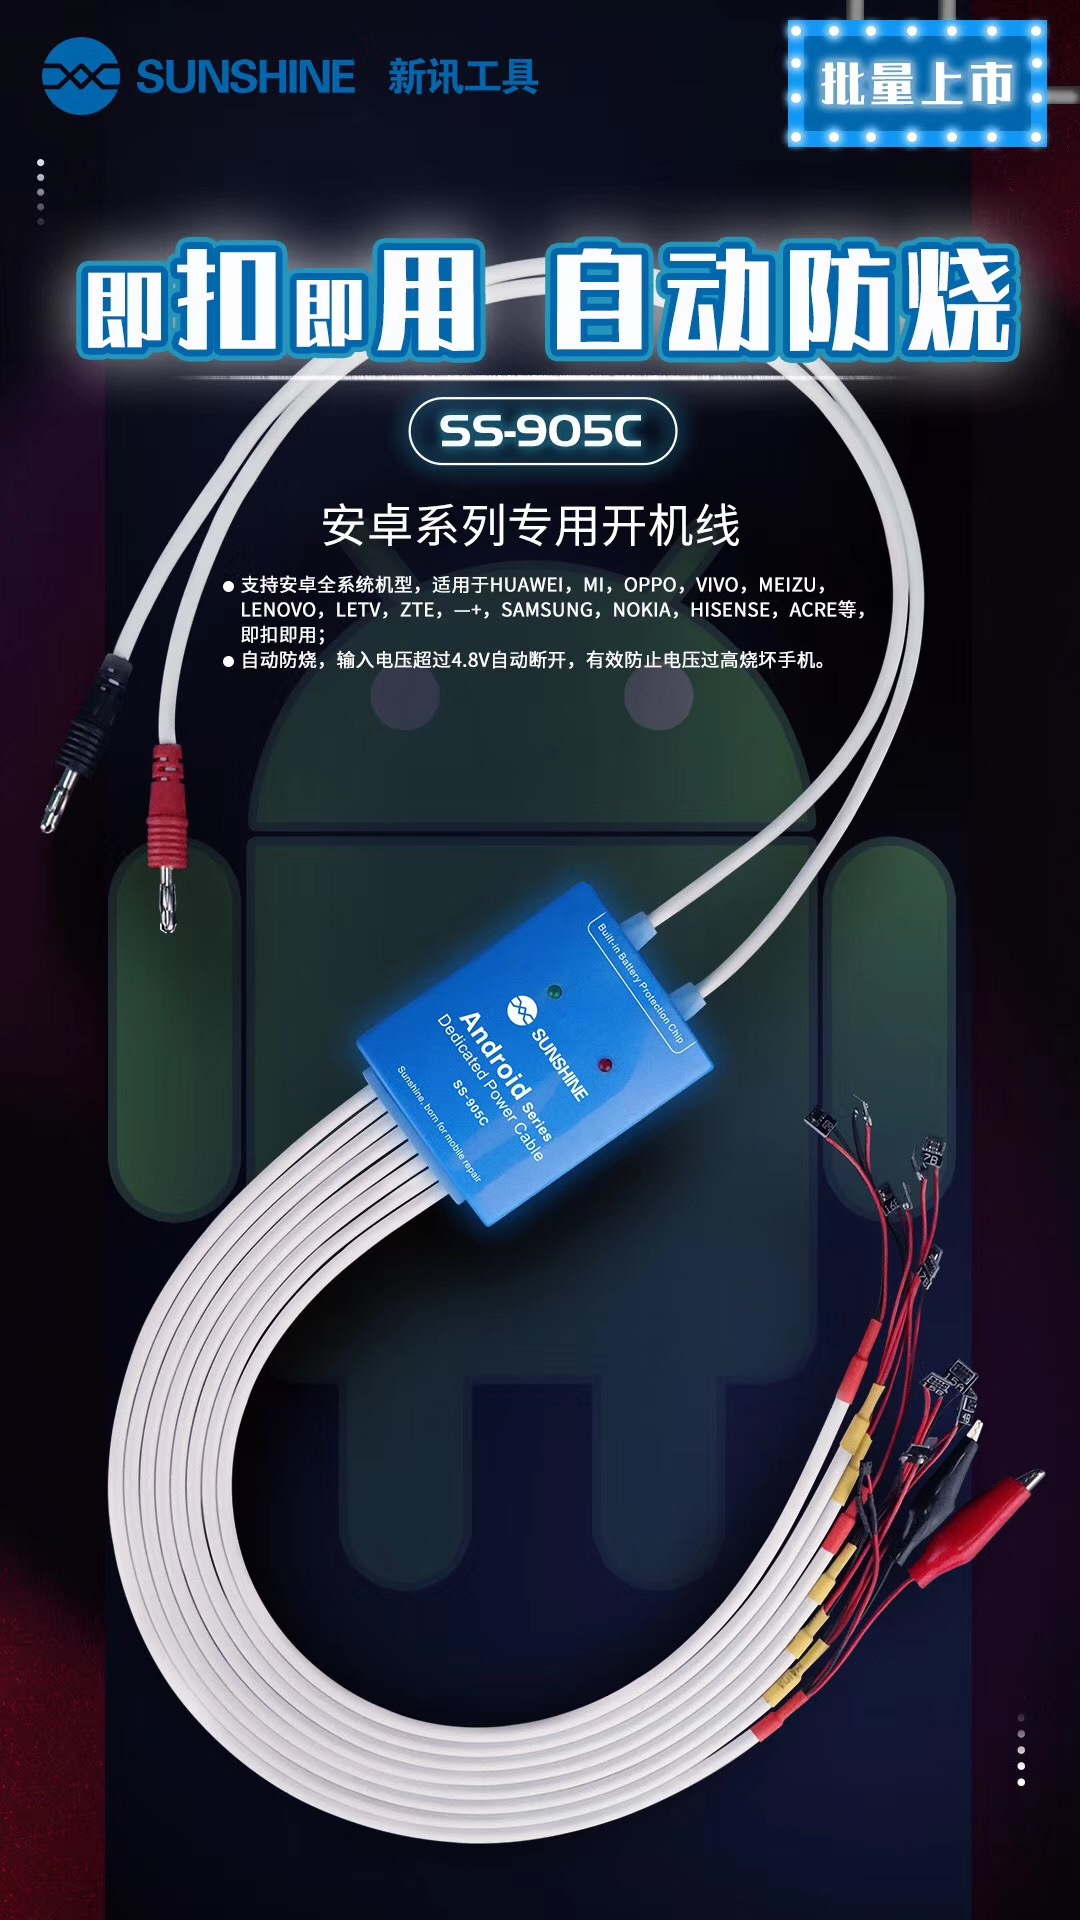 Sunshine SS-905C Dedicated Power Supply Cable for Android